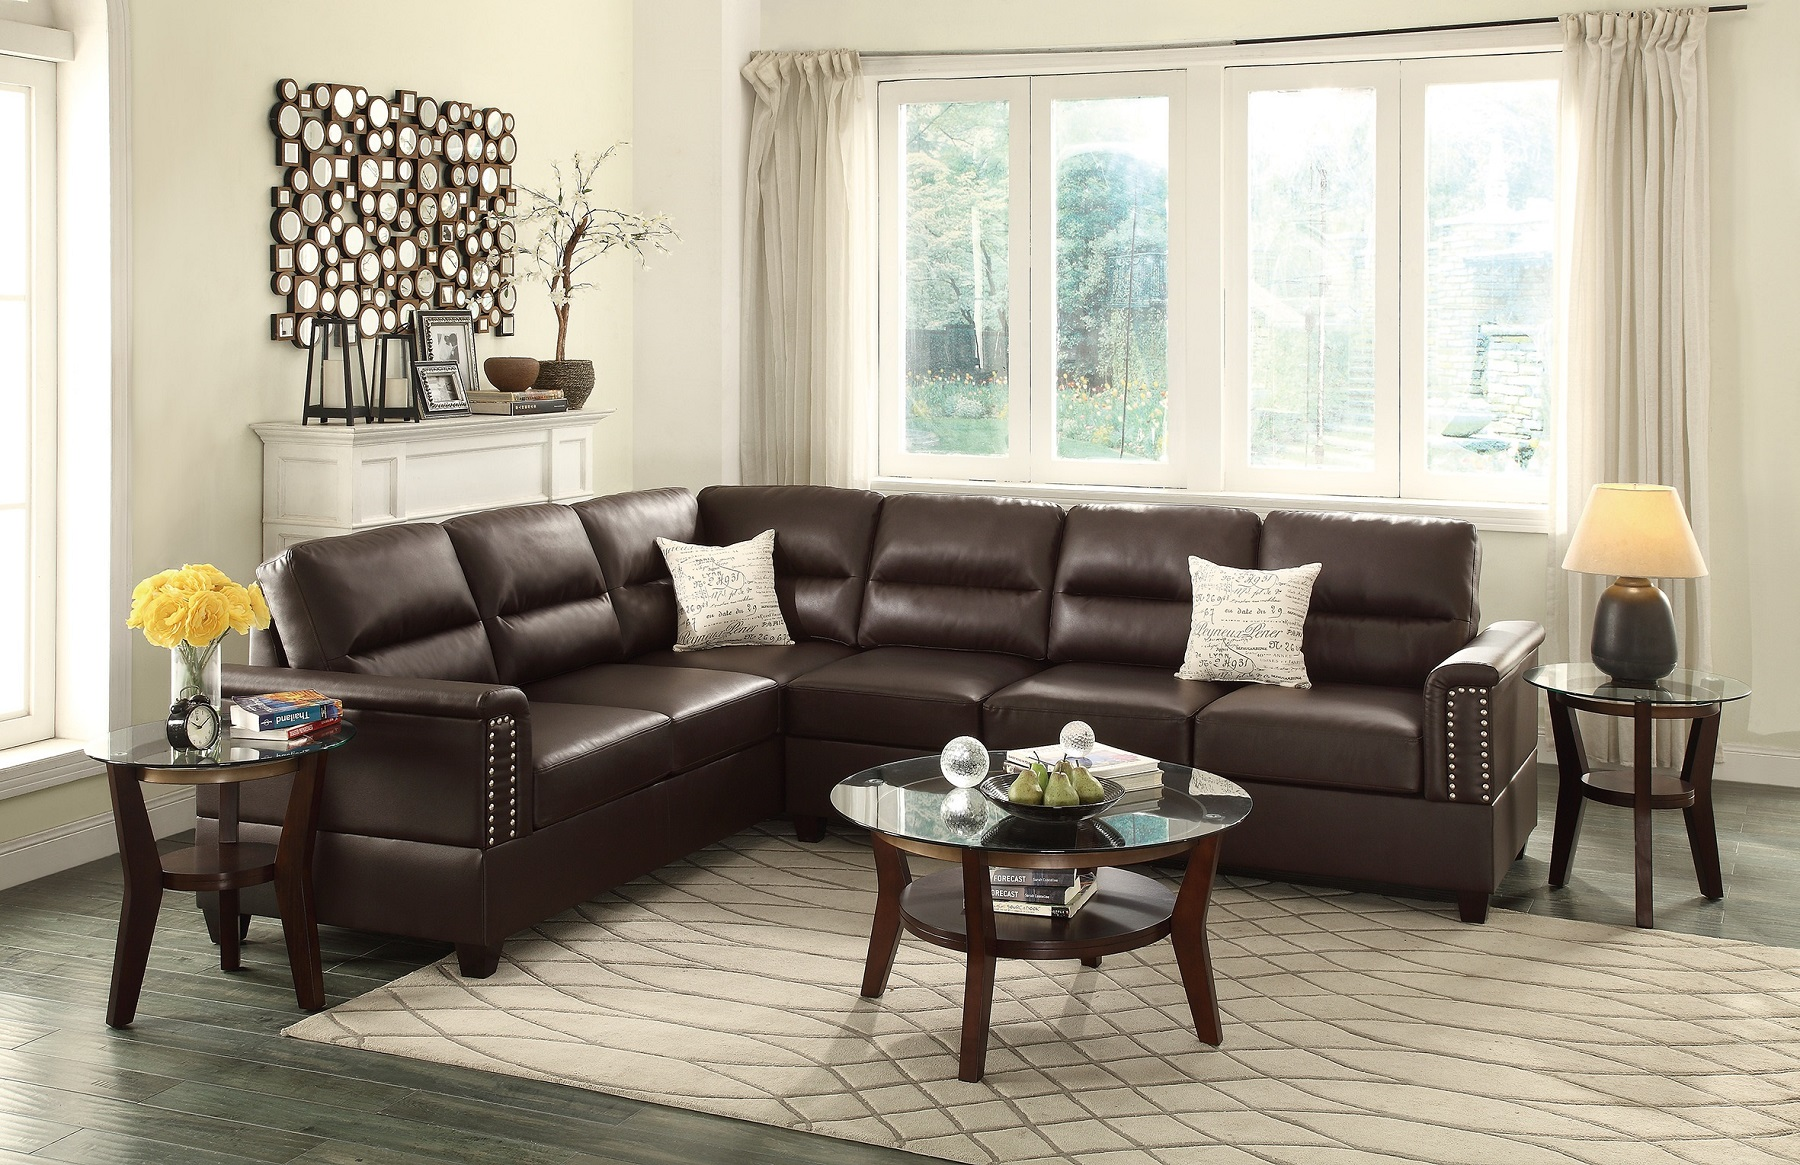 Living Room Sectional Reversible Sectionals Sofa Love-seat Wedge Espresso  Bonded Leather 2pcs Set Plush Couch